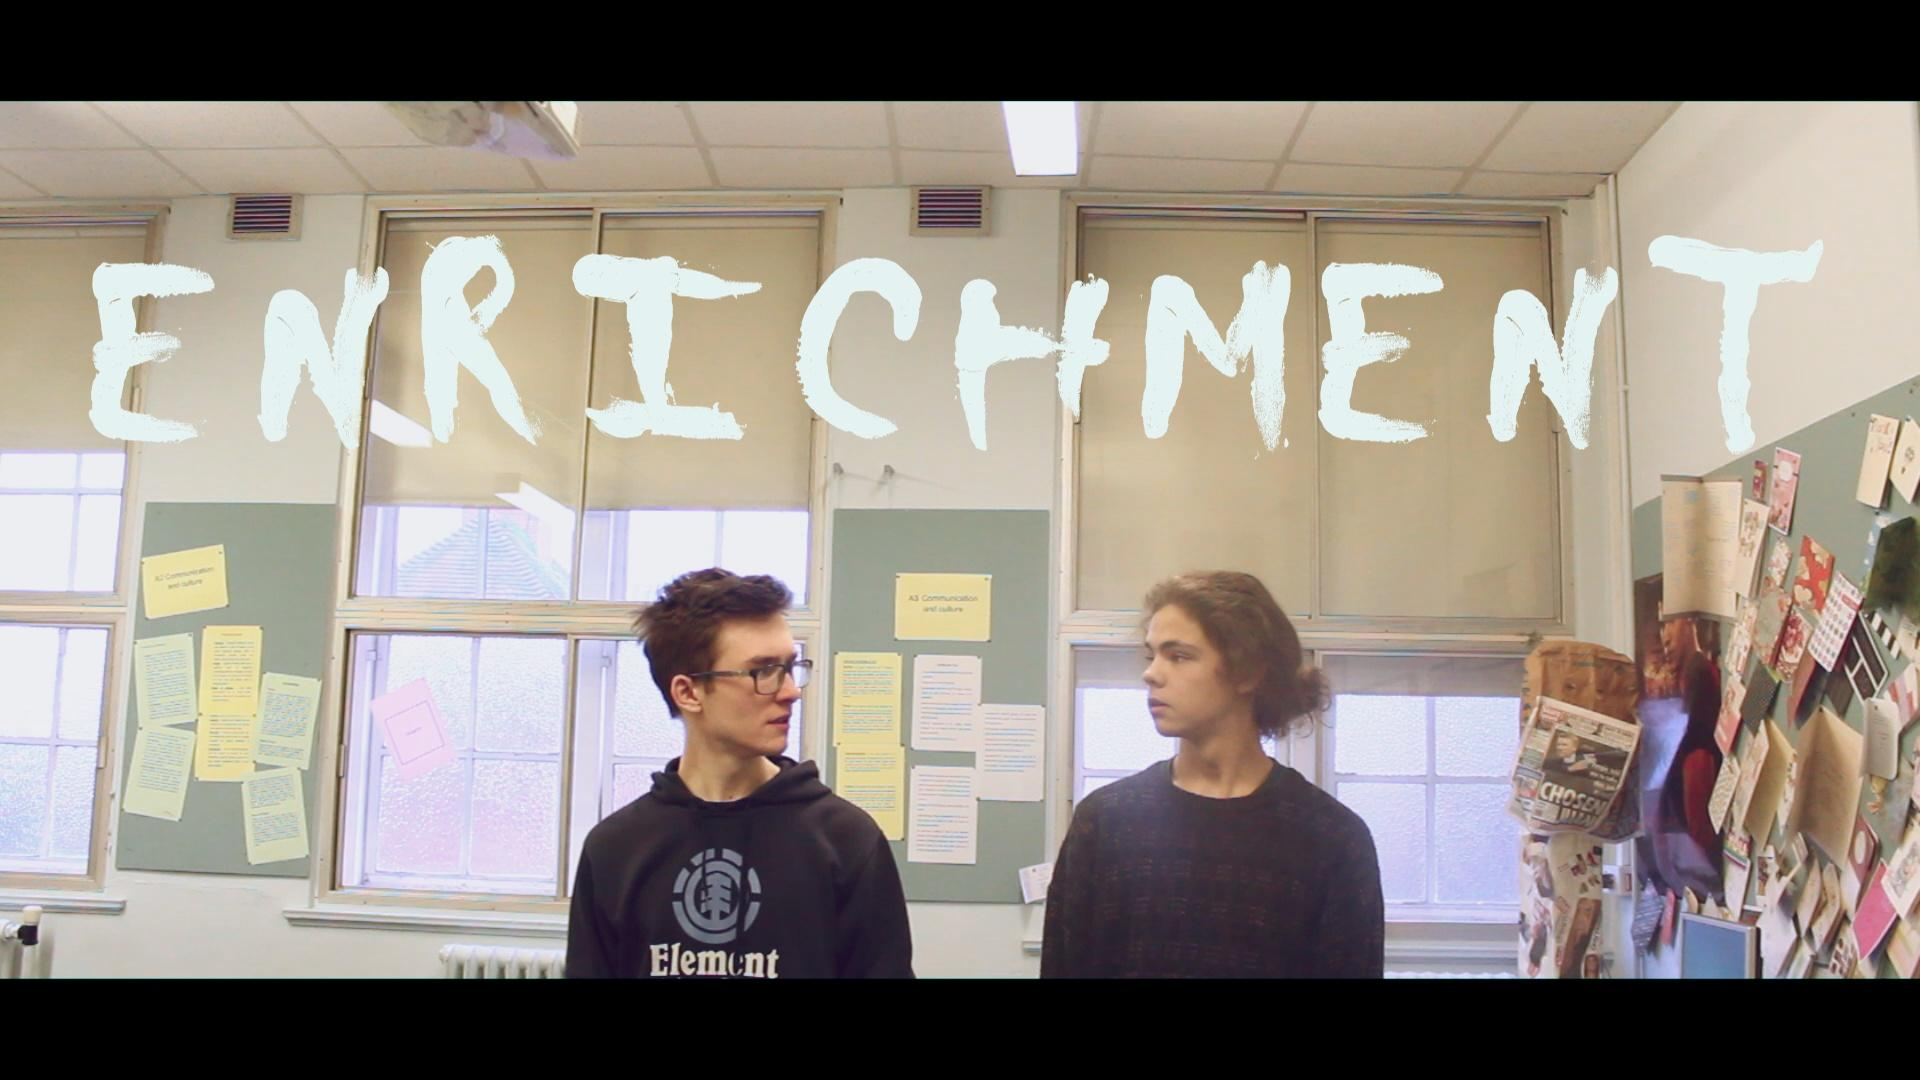 King Edward VI pupil Max Tobin needs to raise £1,300 to produce a dark comedy film about recreational drug use entitled 'Enrichment'.